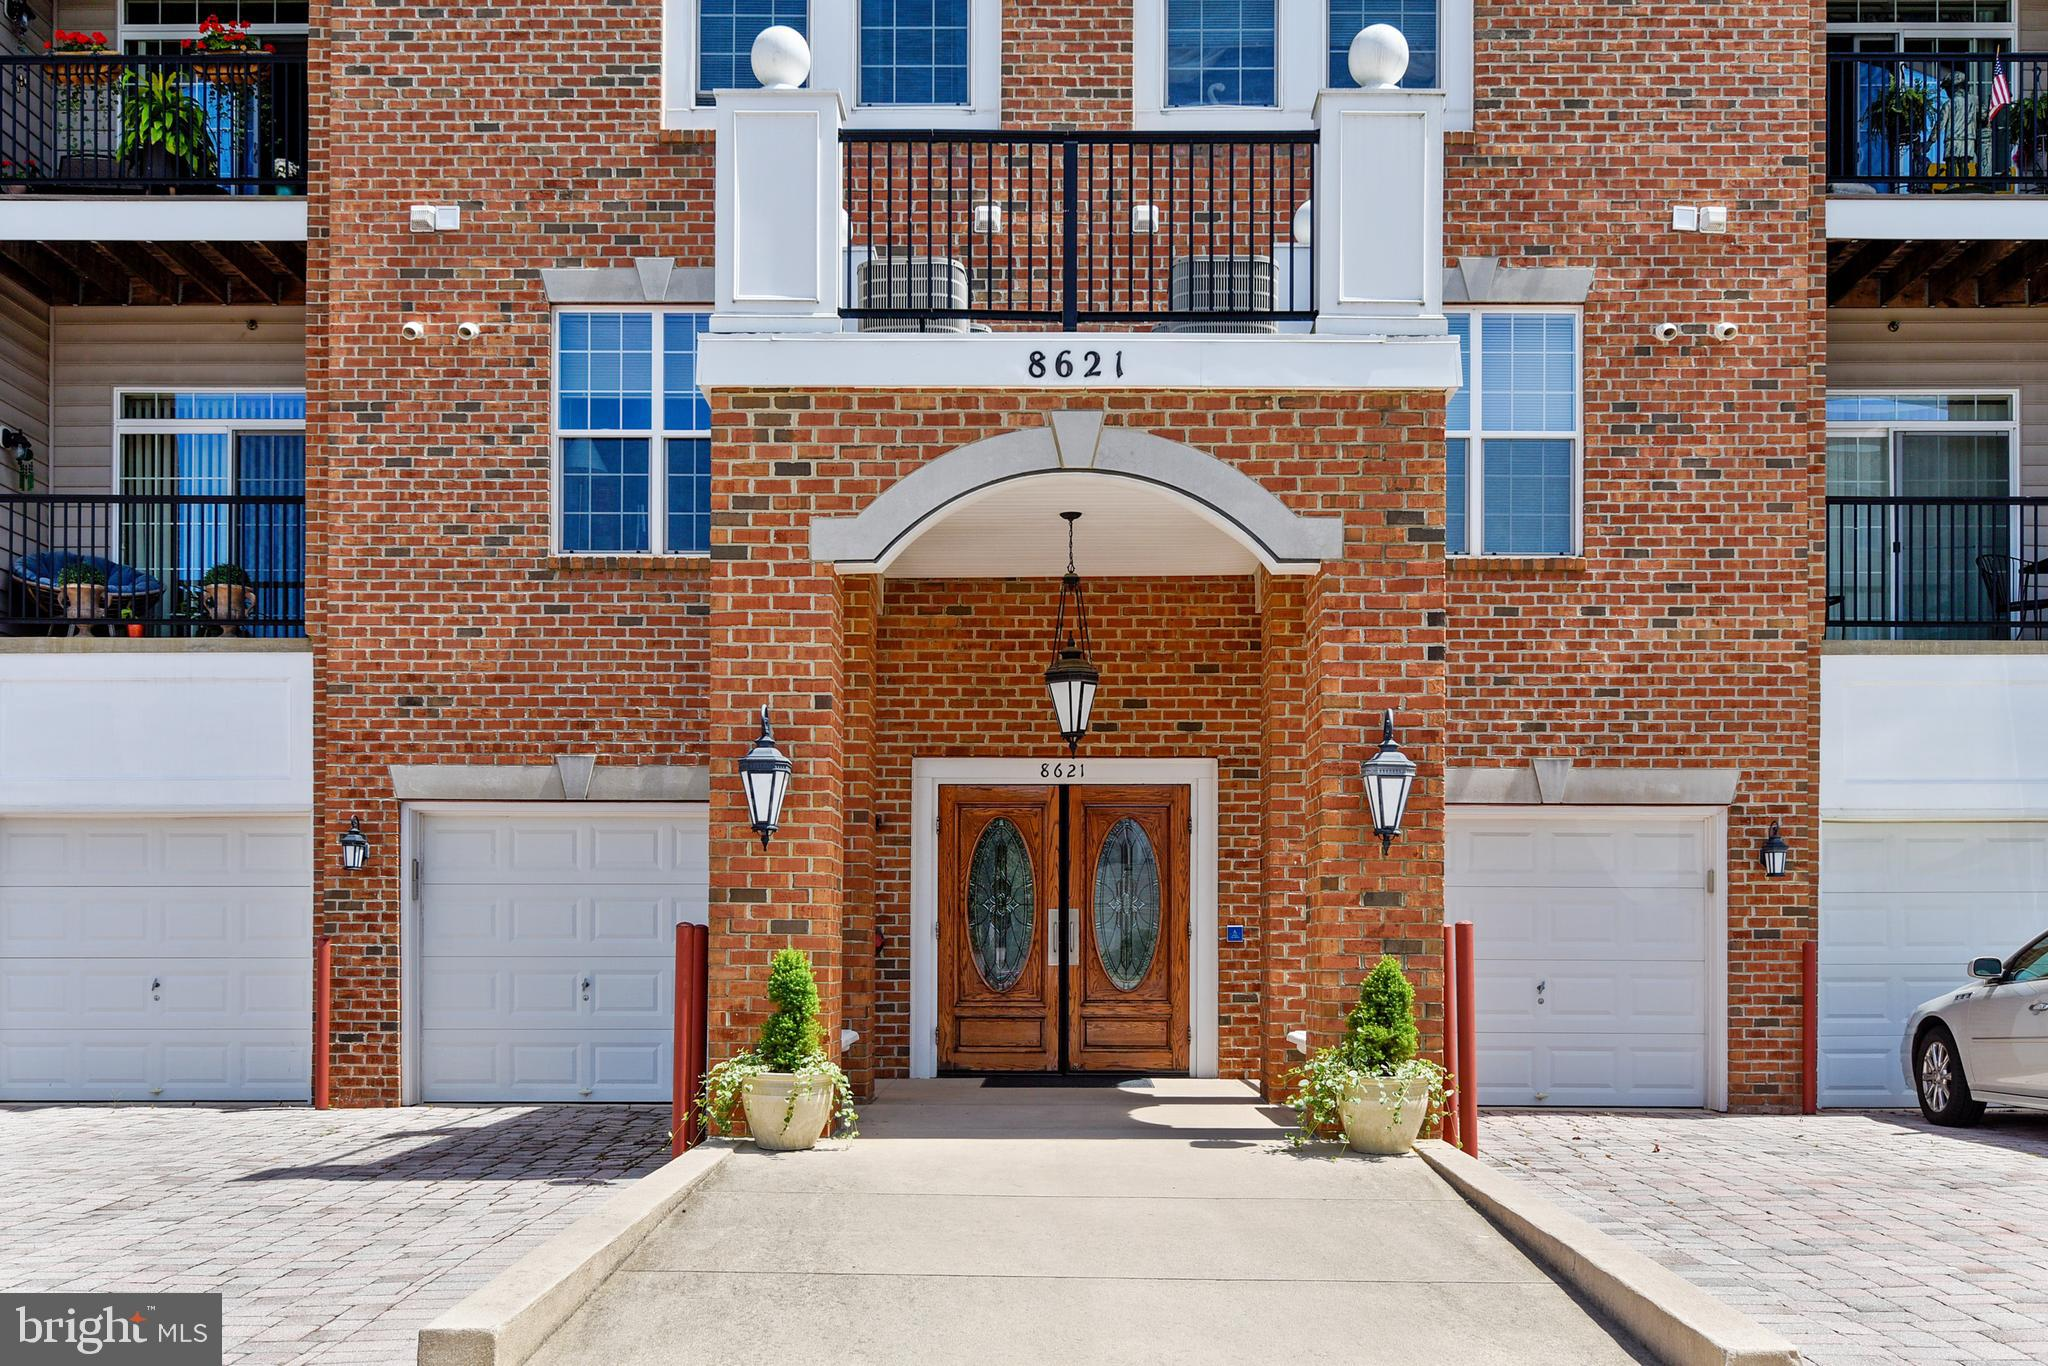 Get ready to enjoy the carefree lifestyle of condo living in the 55+ community of Cedar Ridge in Pin